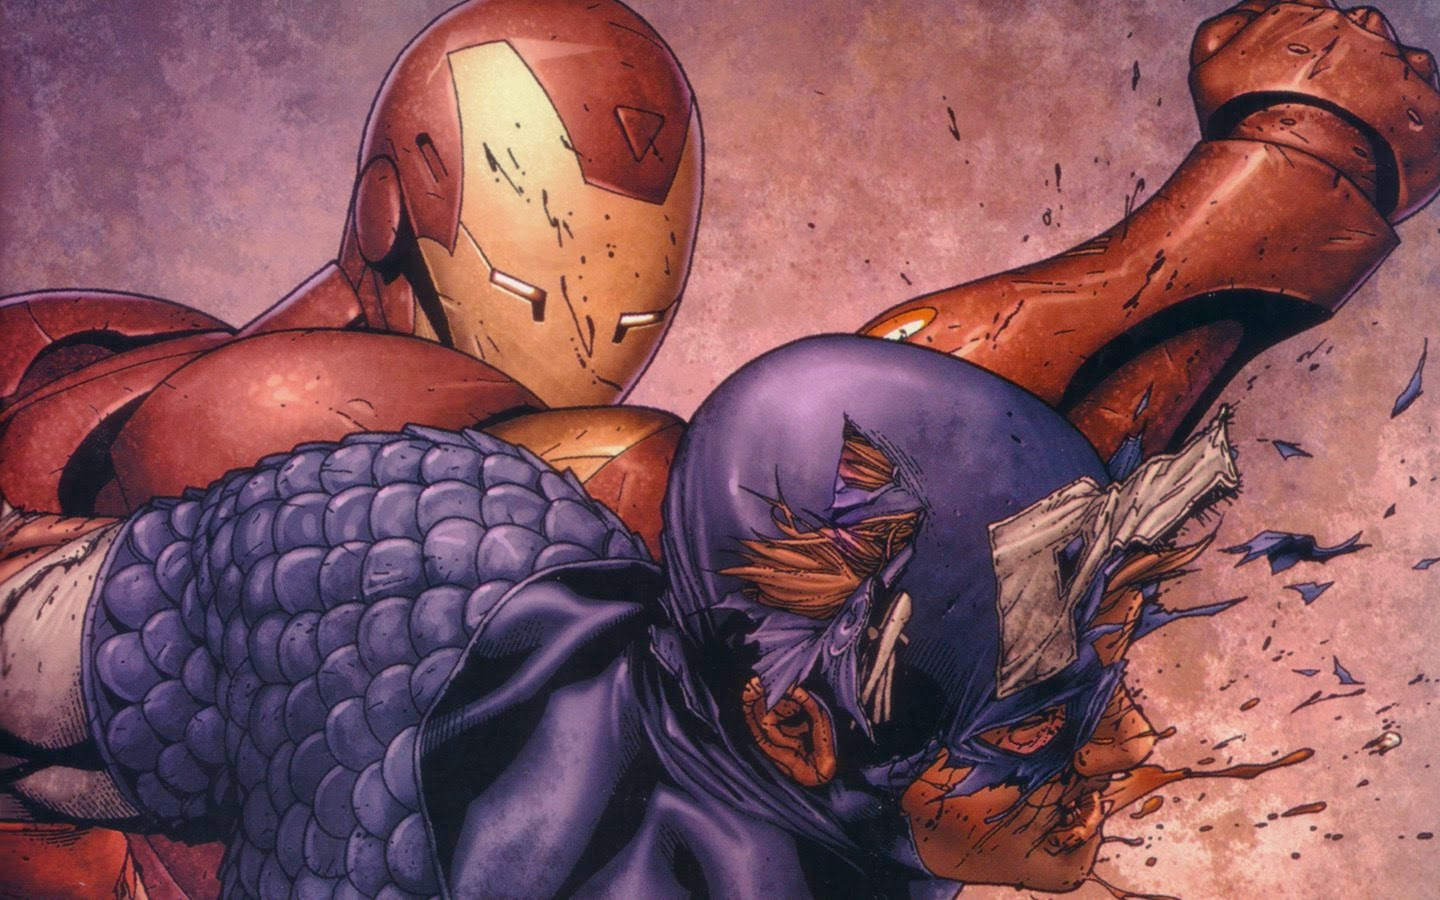 civil-war-punch-which-side-of-marvel-s-civil-war-would-you-be-on